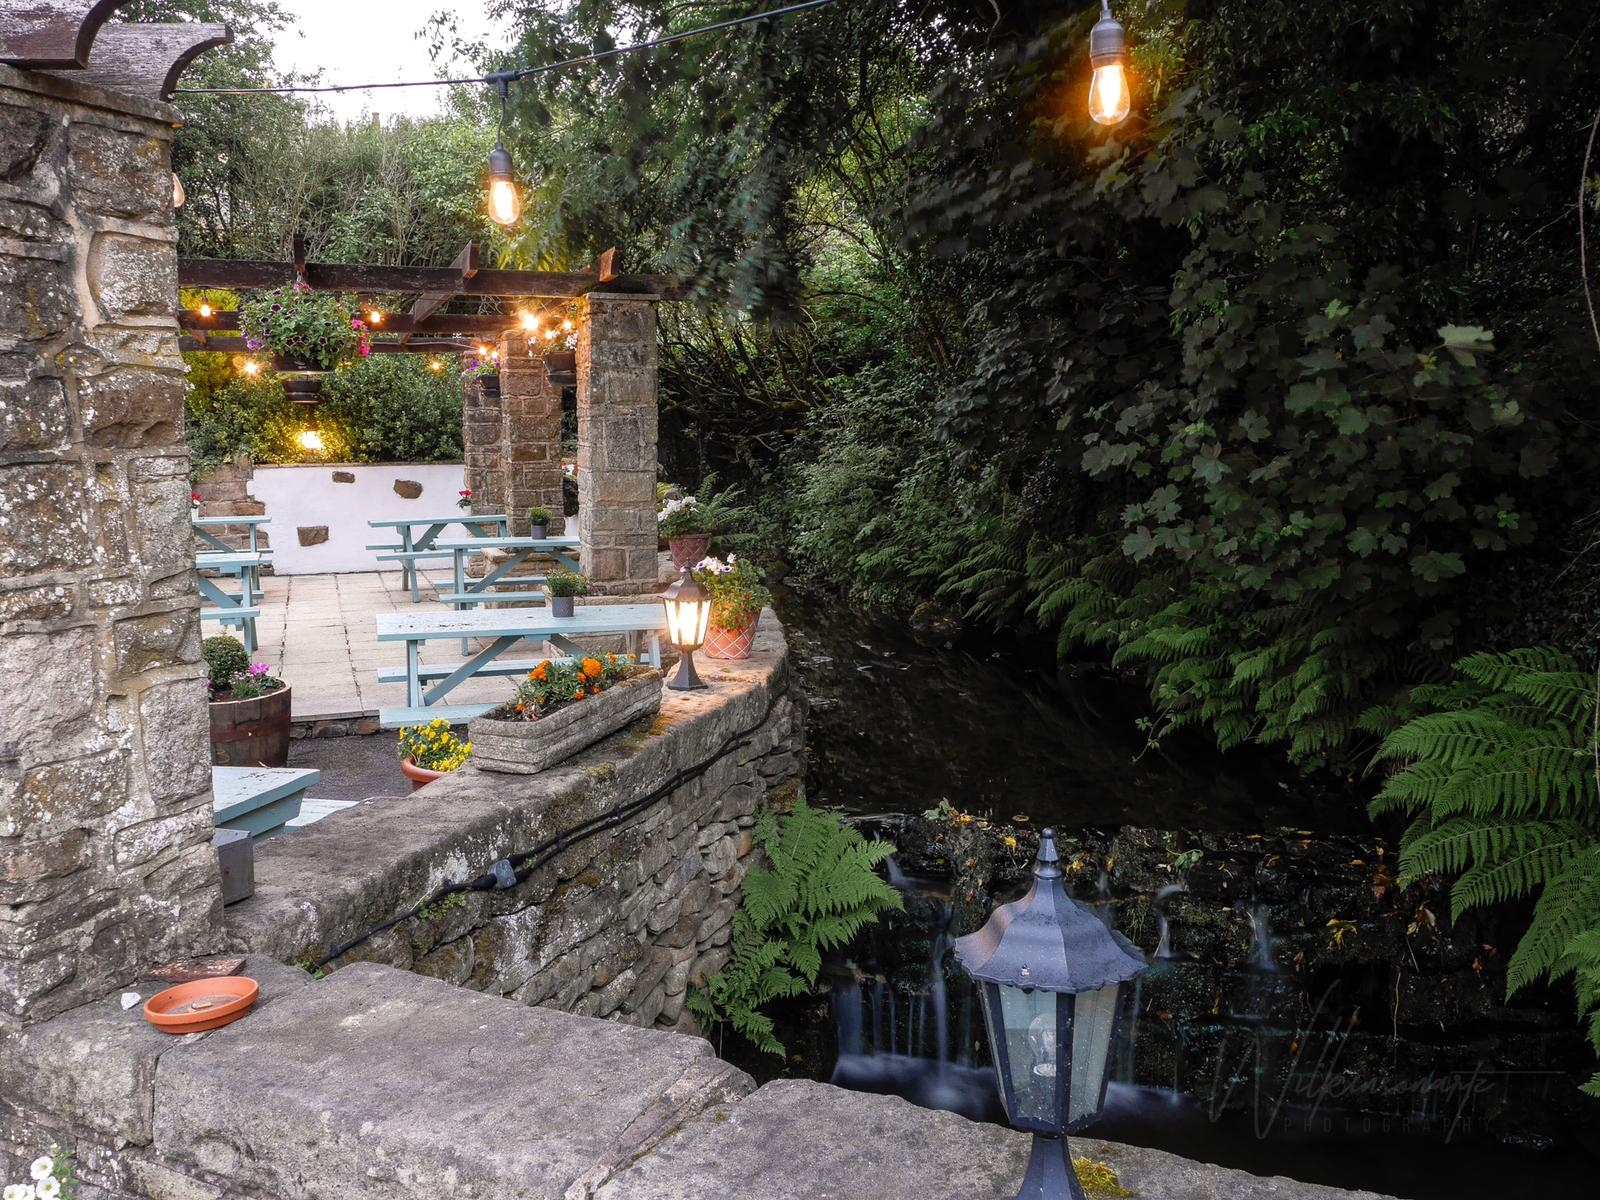 The Scotsman's Pack's patio